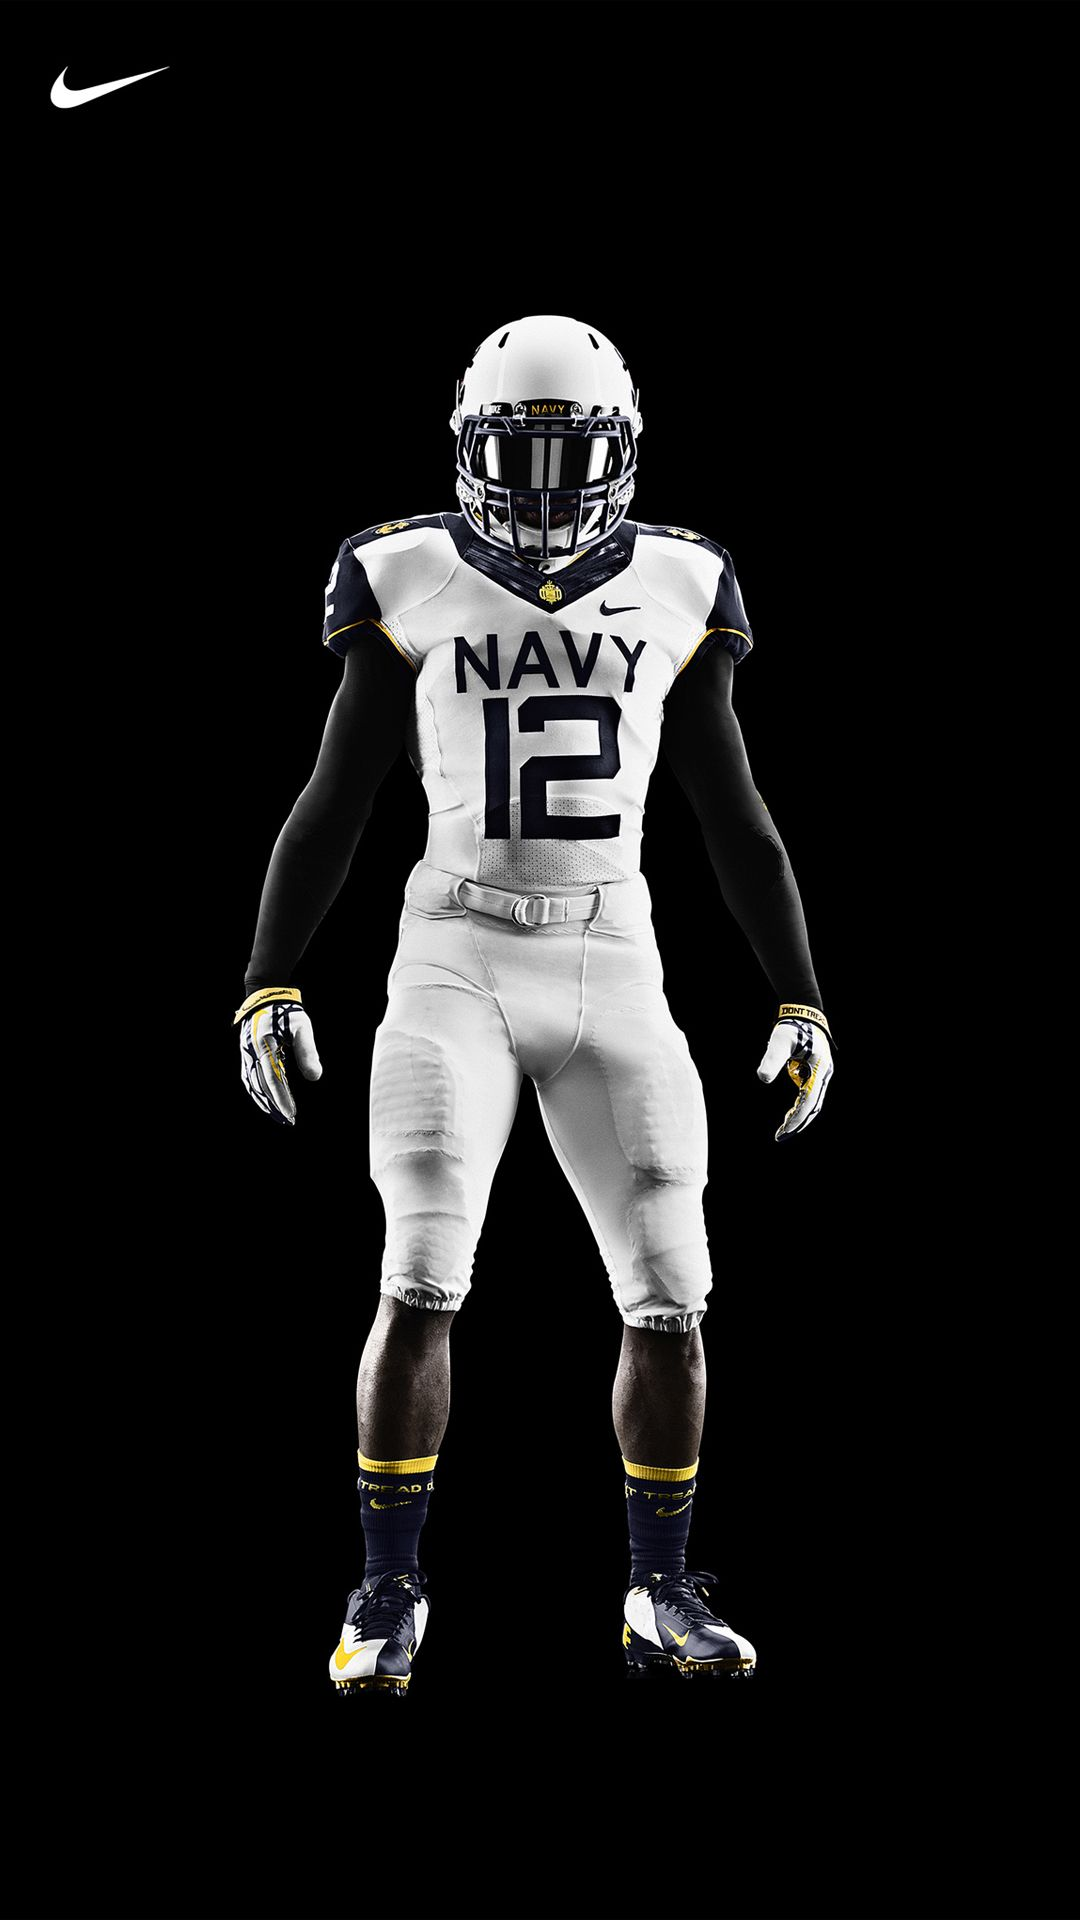 Nfl Sick Football Wallpaper Iphone Navy Football Football Uniforms Nike Football